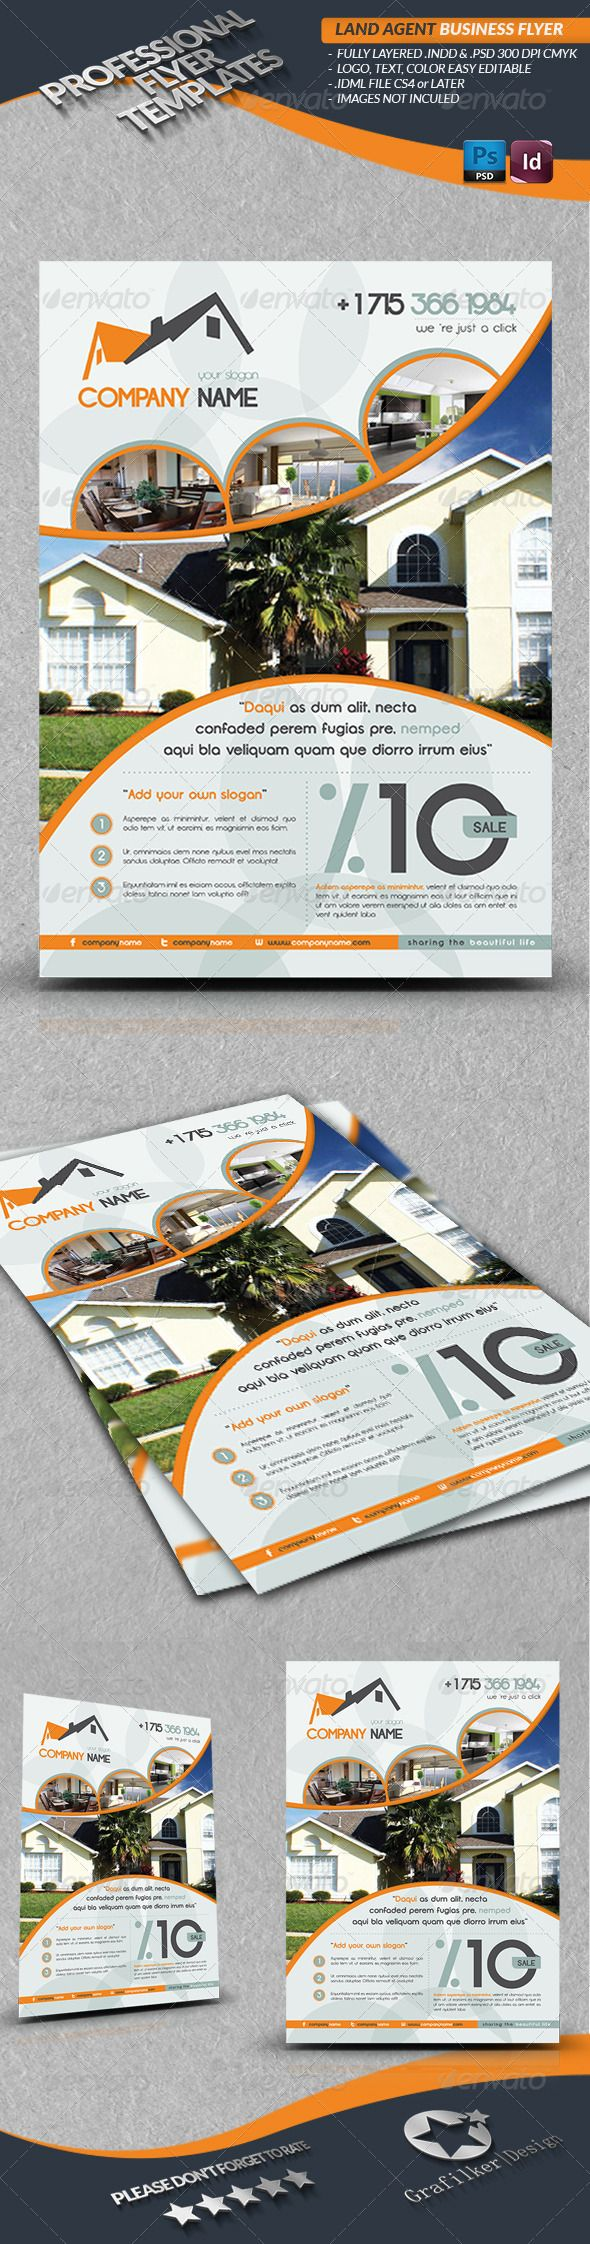 Land Agent Business Flyer - Corporate Flyer Template PSD, InDesign INDD. Download here: http://graphicriver.net/item/land-agent-business-flyer/2922593?s_rank=396&ref=yinkira